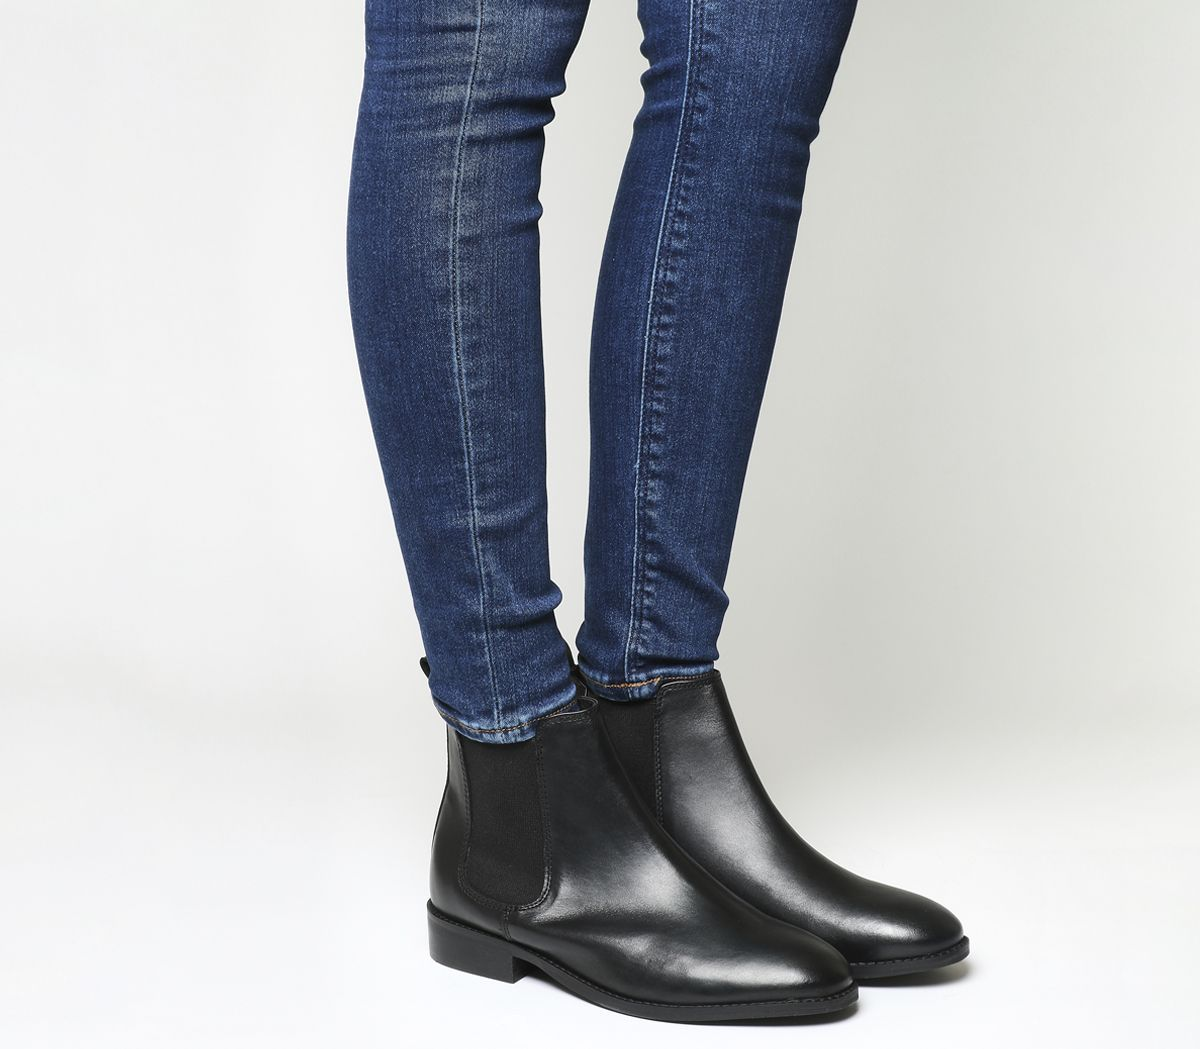 eac11f1bd Office Bramble Chelsea Boots Black Leather - Ankle Boots